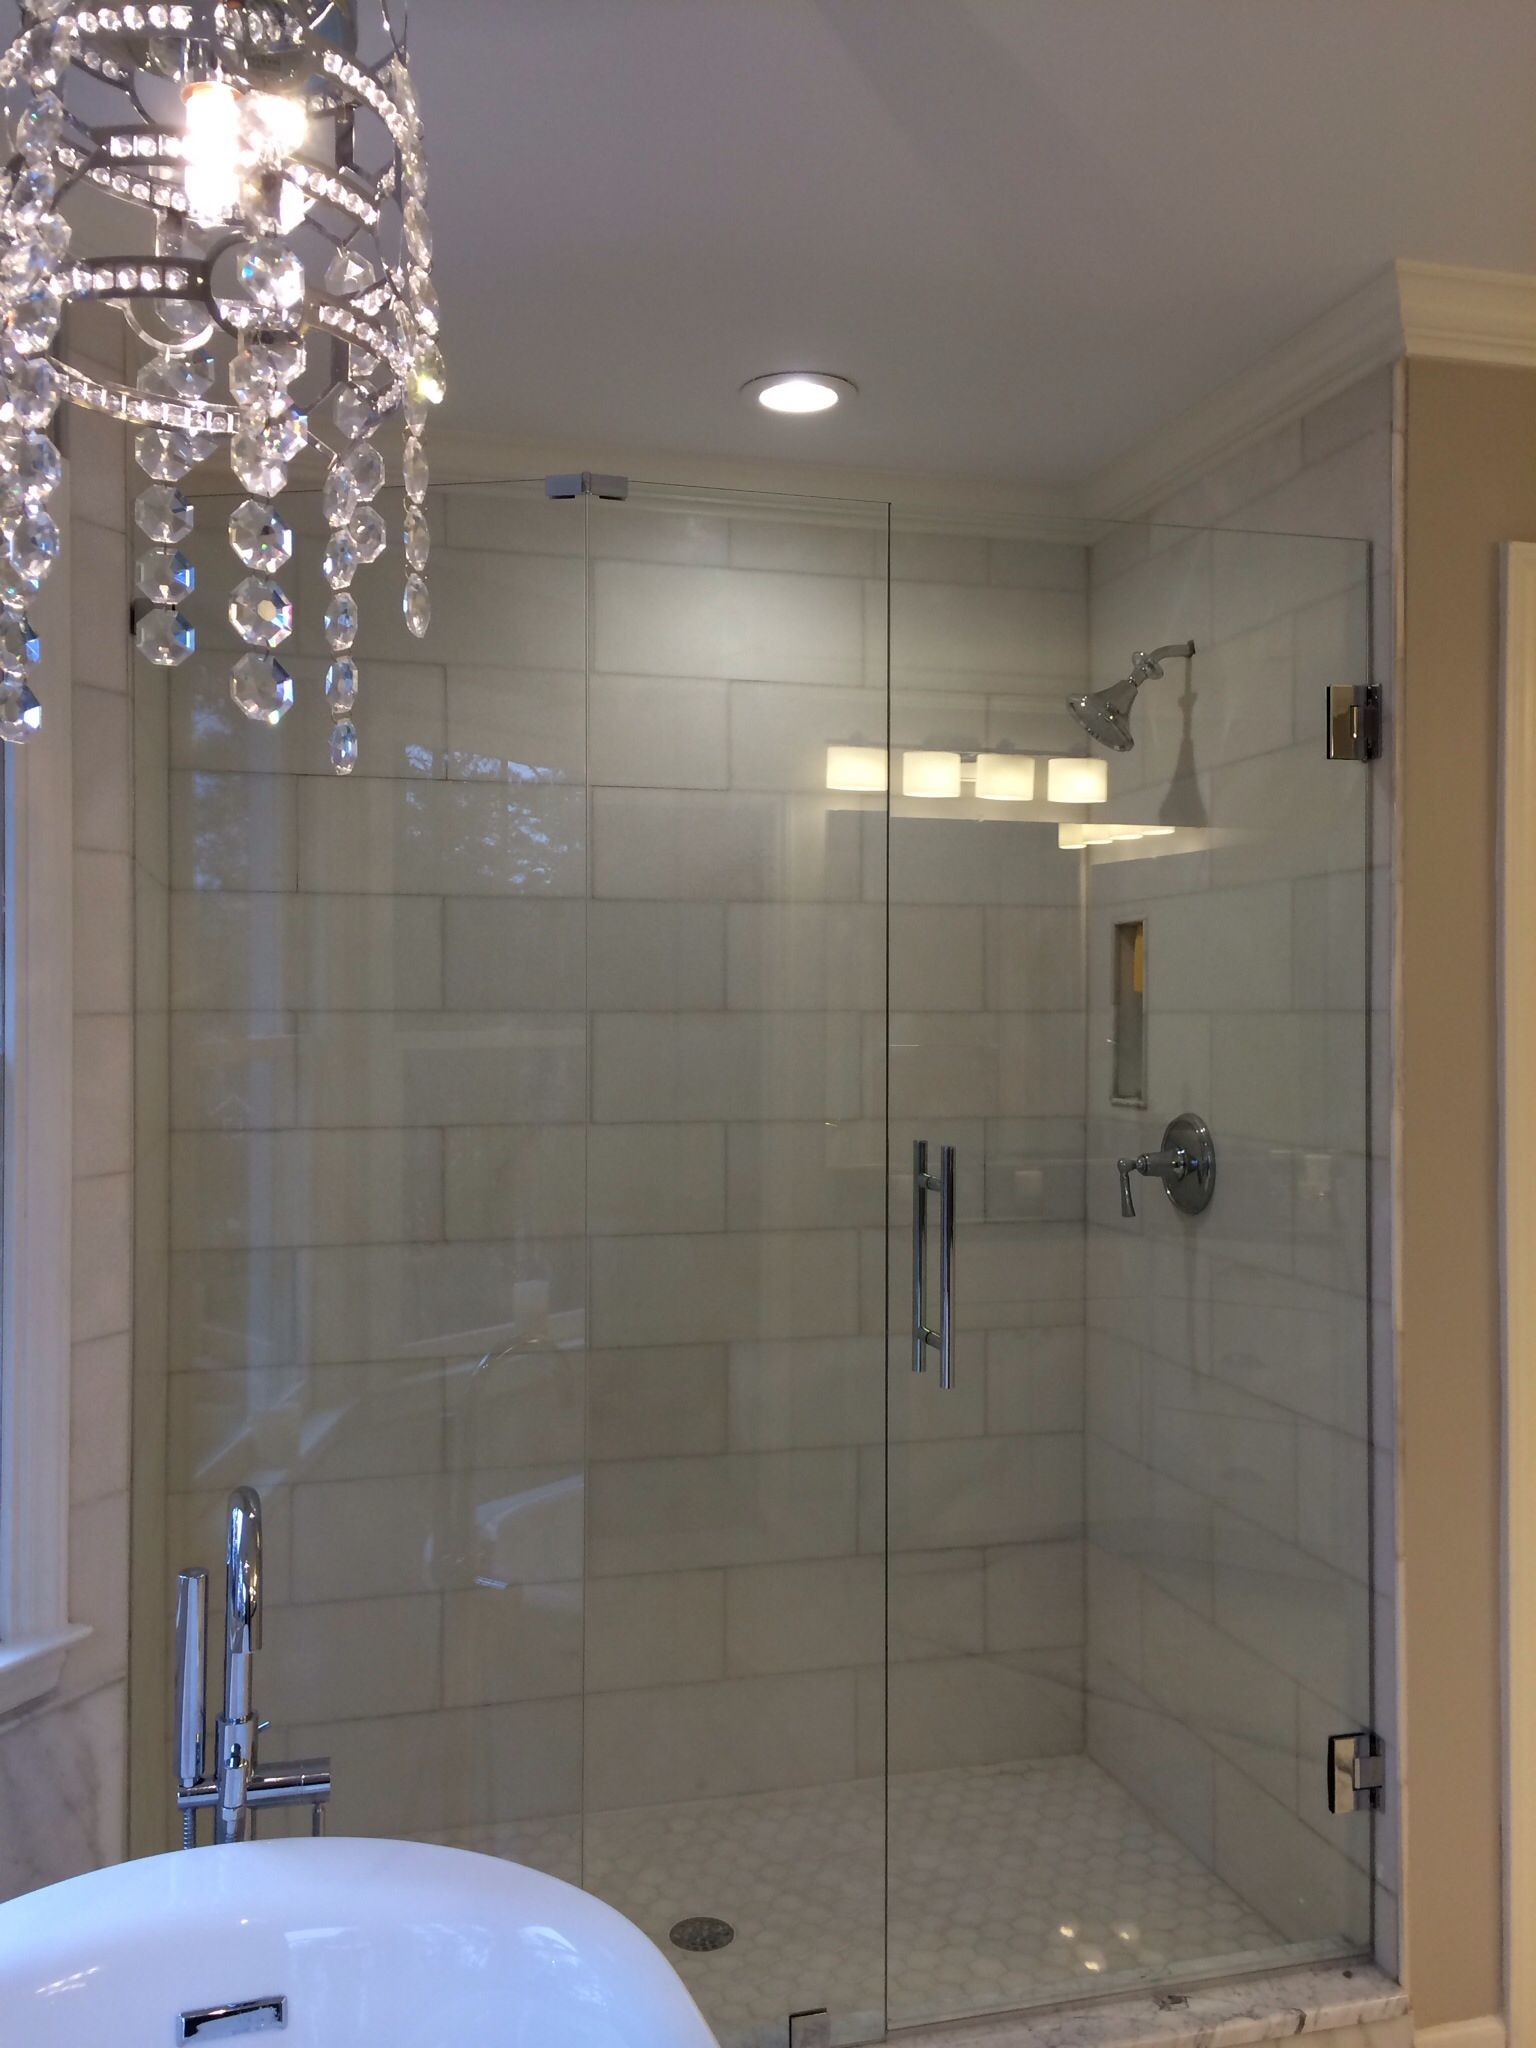 Ladder Style Shower Handles Fit In Modern Contemporary Bathroom